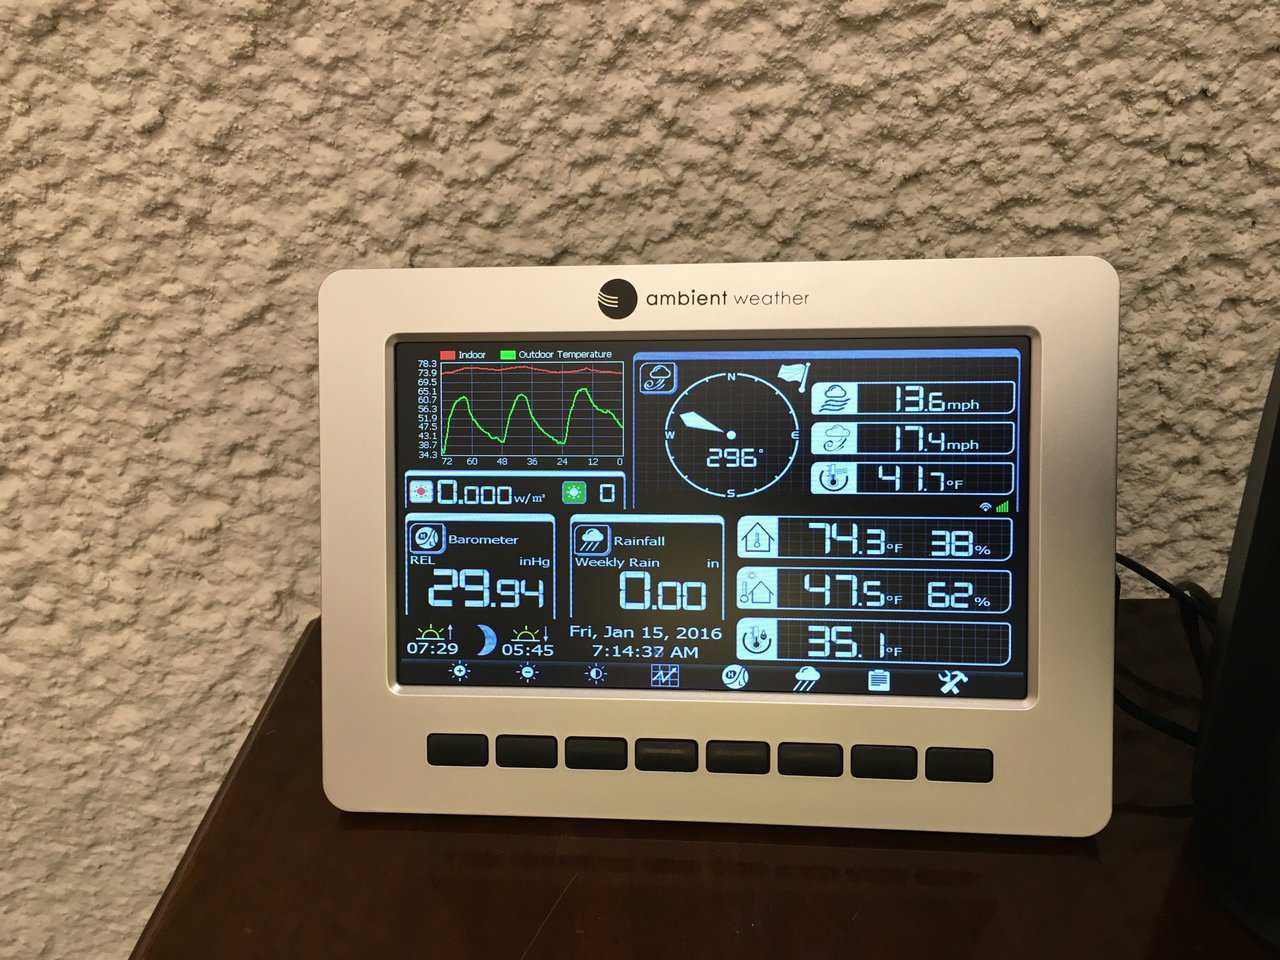 Weather data on the personal weather station wireless controller. It's nice to see a live view of all weather data anytime we want.